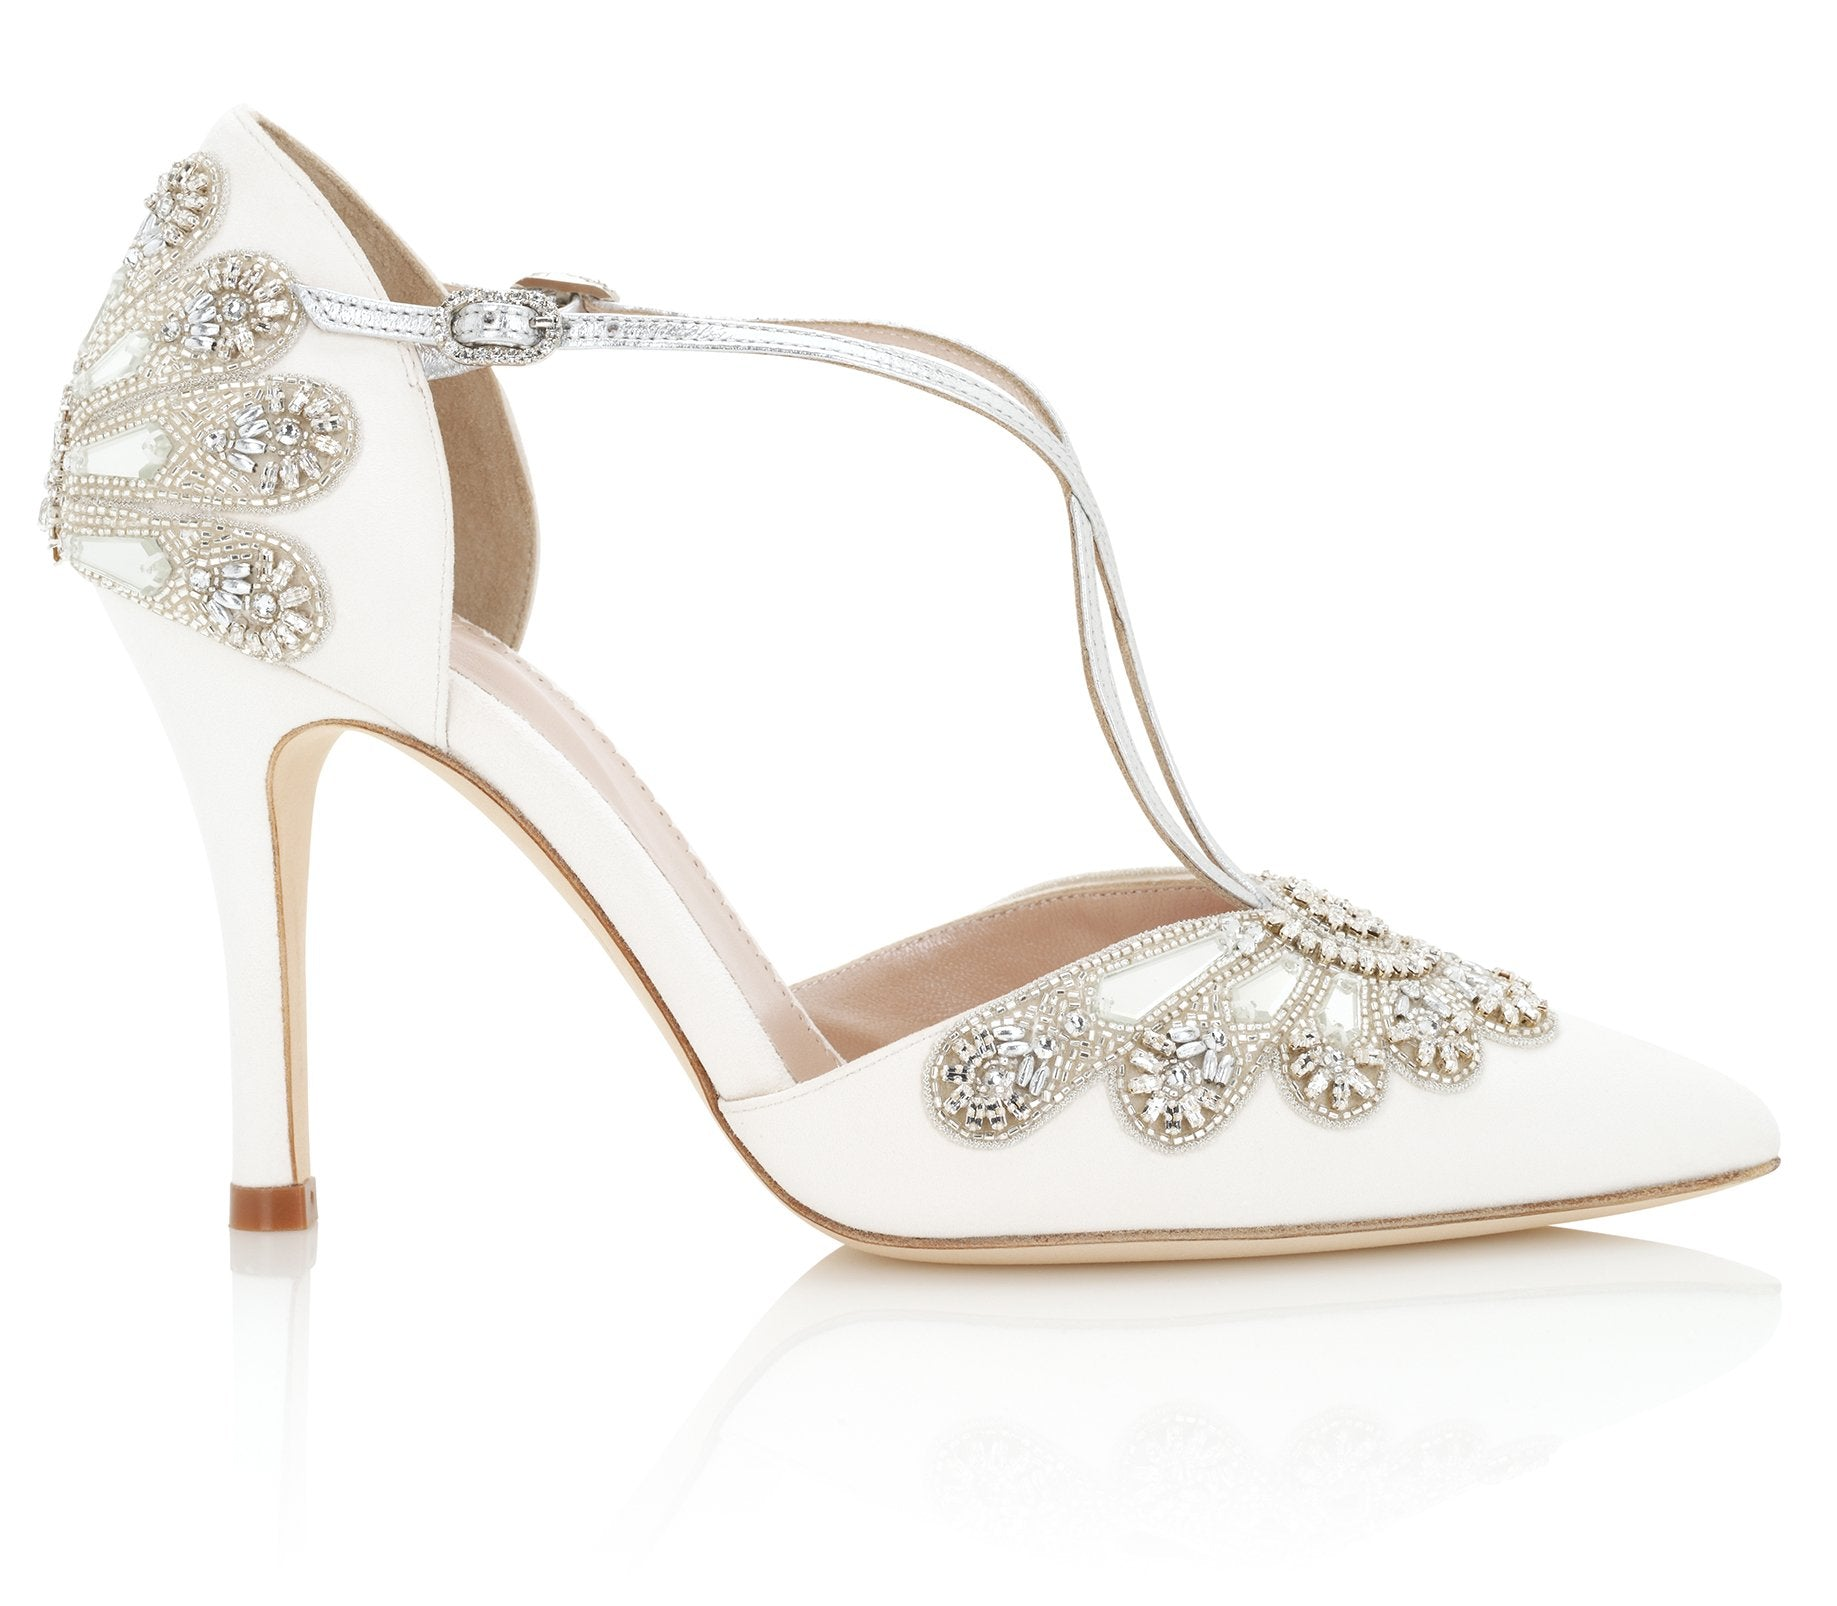 Cinderella Point Ivory and Silver Embellished Bridal Shoes By Emmy London